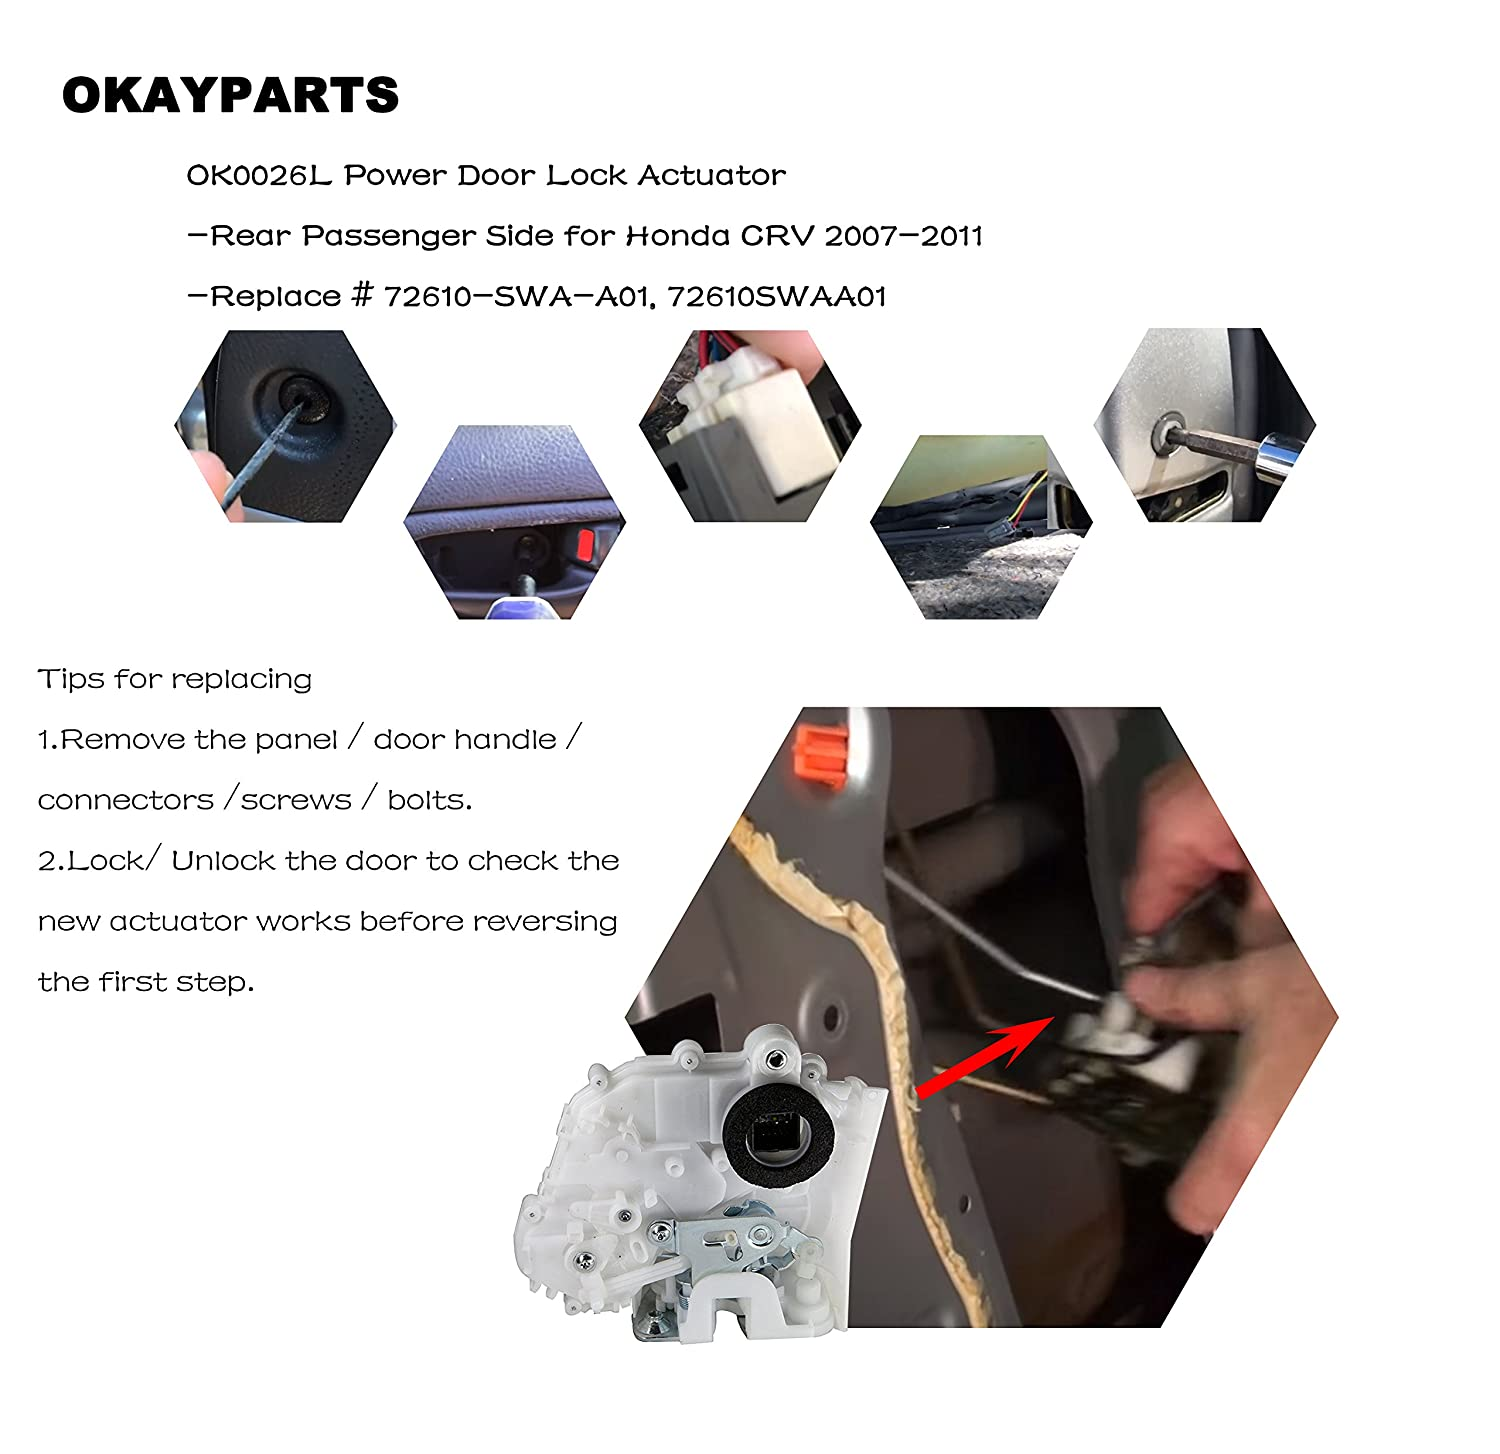 Door Latch Lock Actuator Assembly Rear Passenger Open Fuse Box Honda Crv 2007 Side For 2011 Replaces 72610 Swa A01 72610swaa01 Automotive